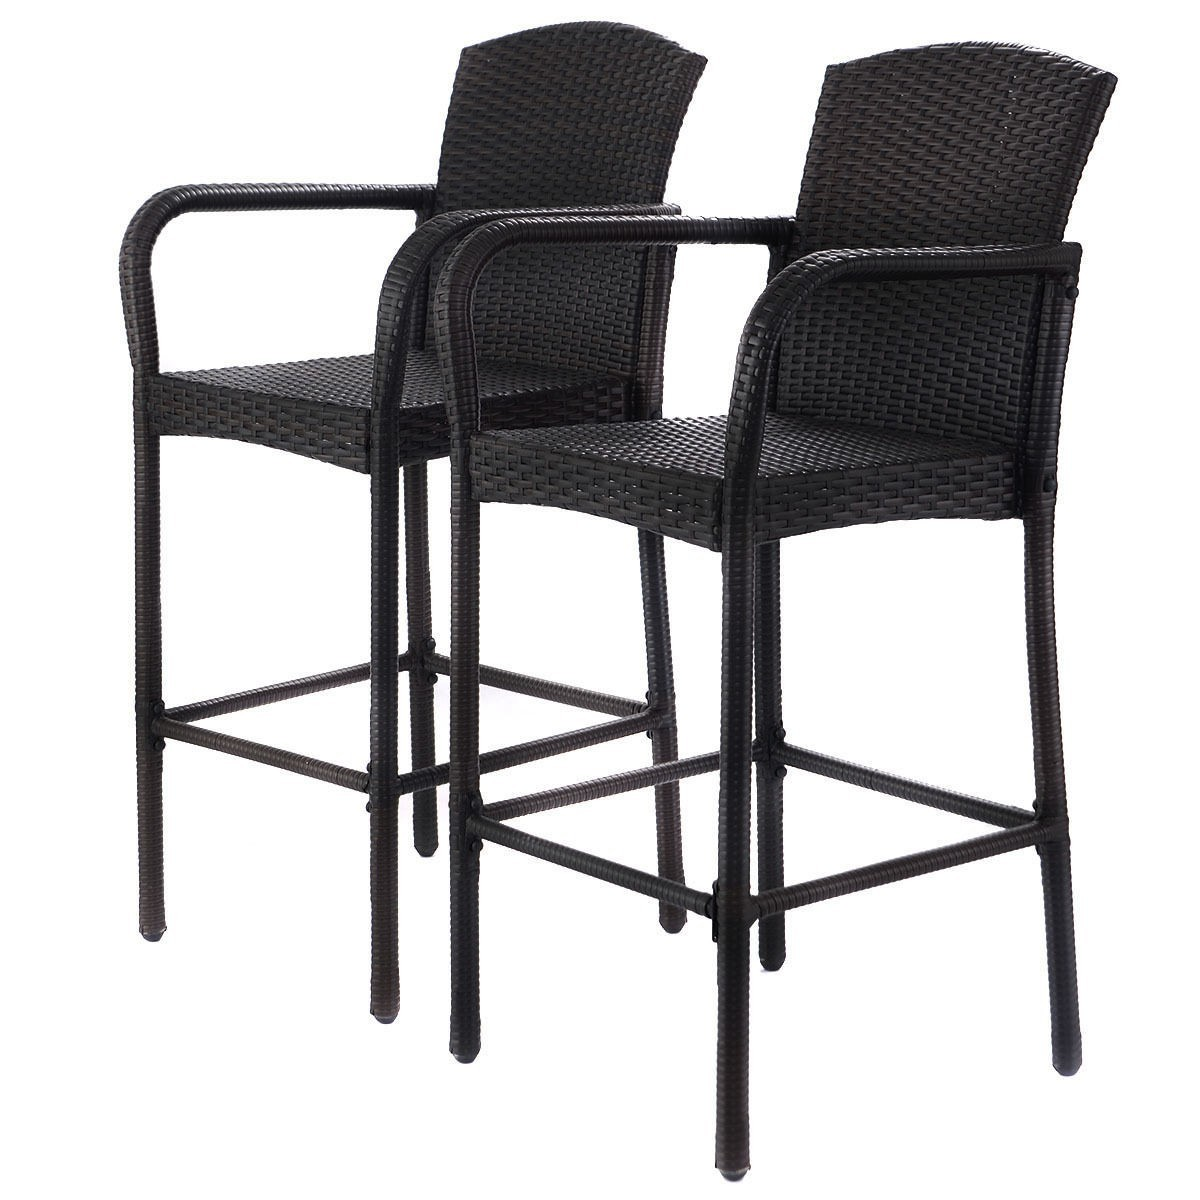 2 PCS Rattan Wicker Bar Stool Dining High Counter Chair Patio Furniture Armrest